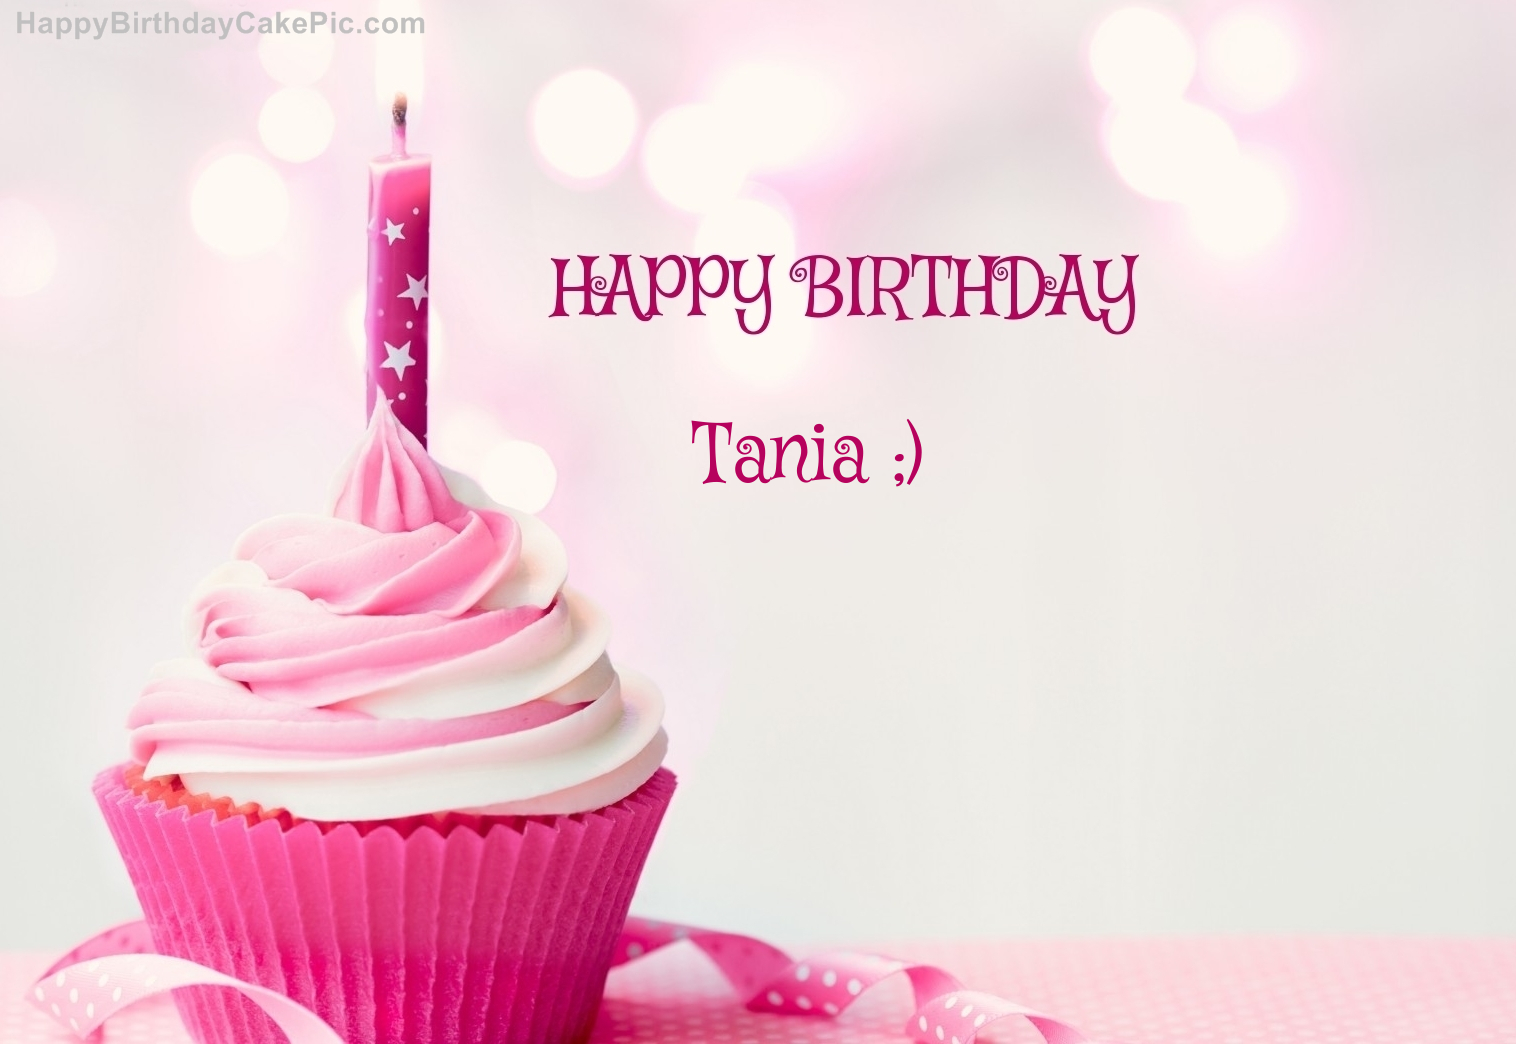 Happy Birthday Cupcake Candle Pink Cake For Tania